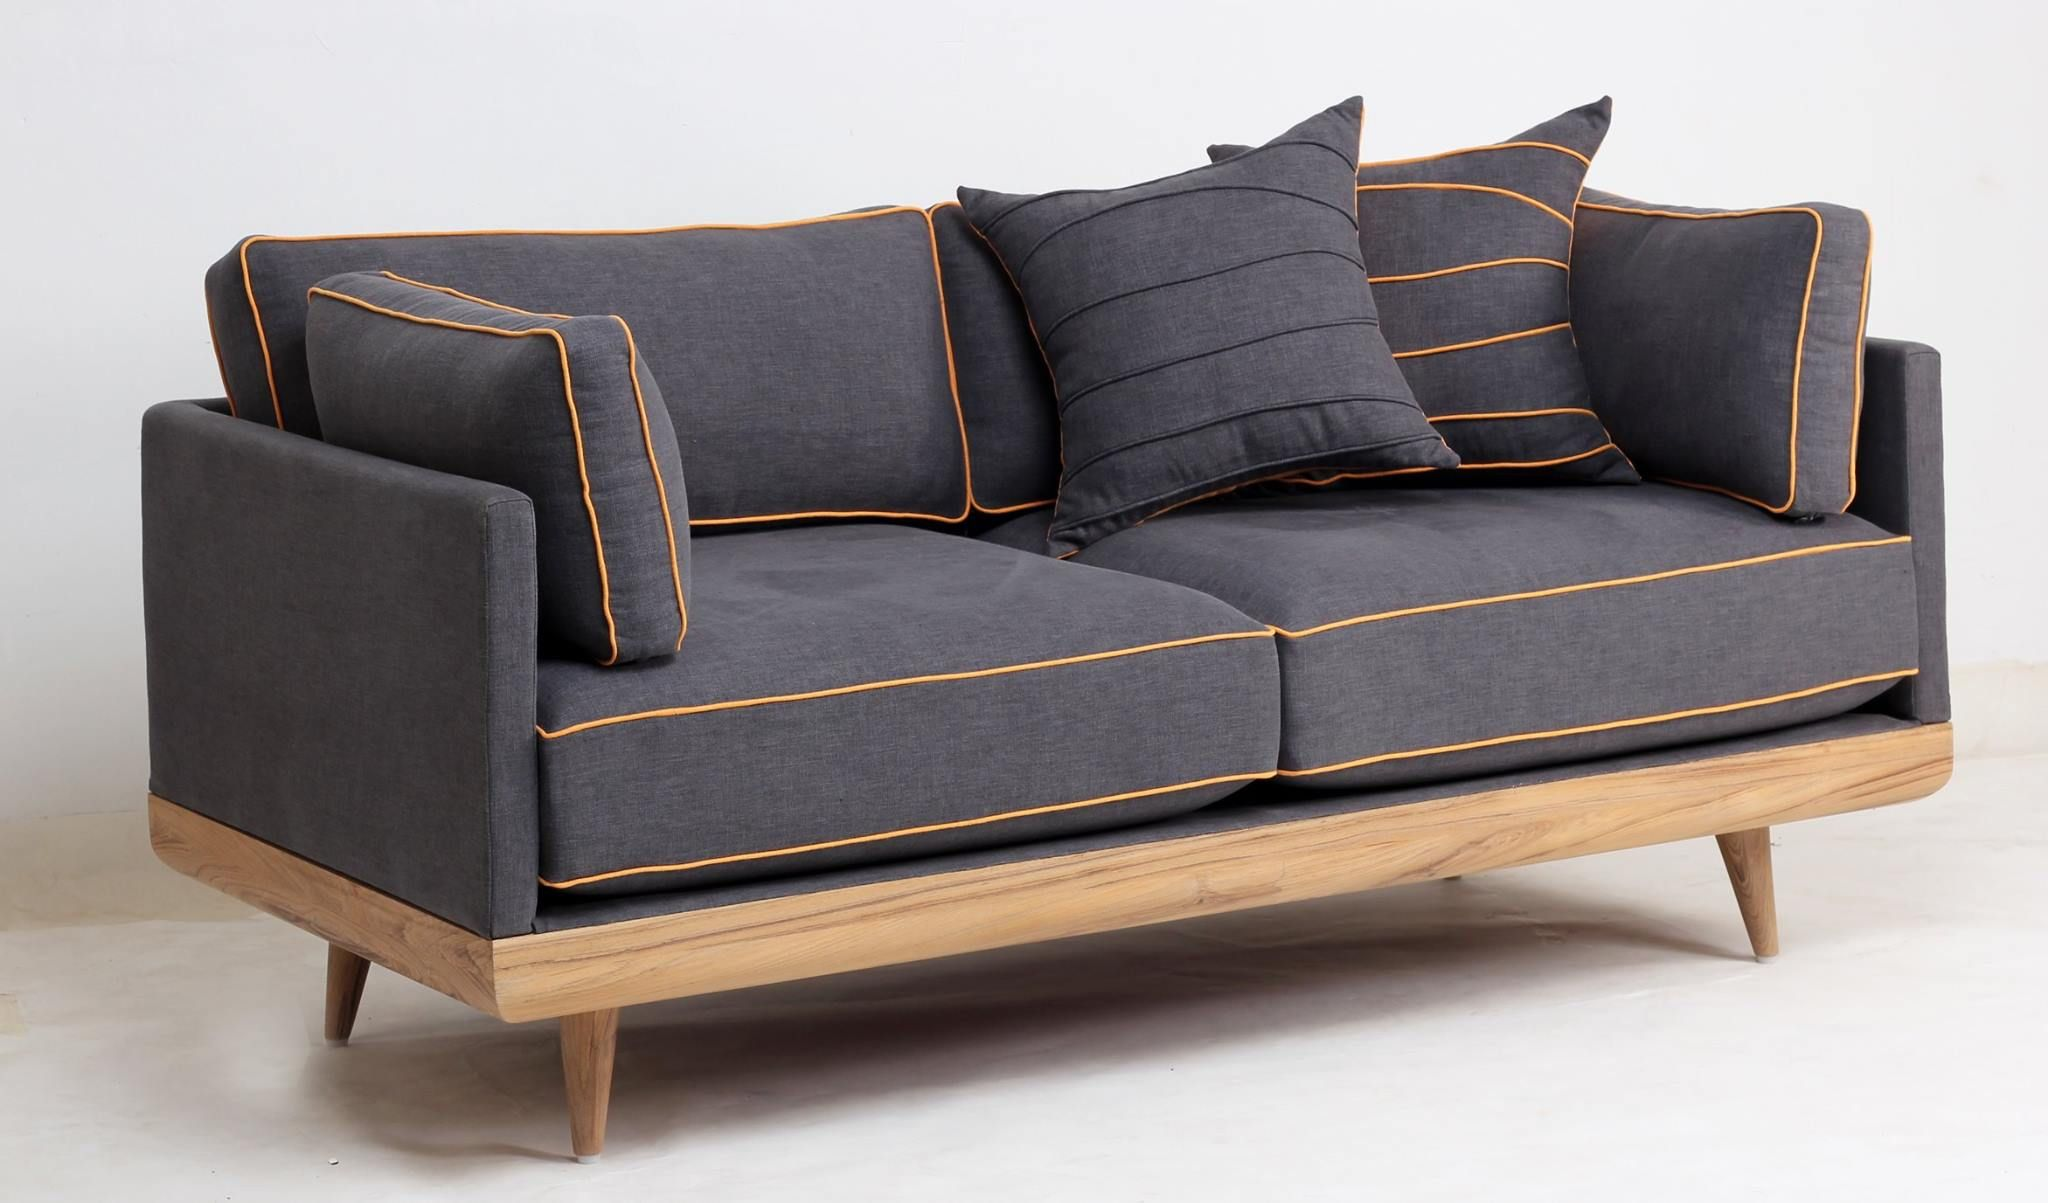 Image result for upholstery sofa